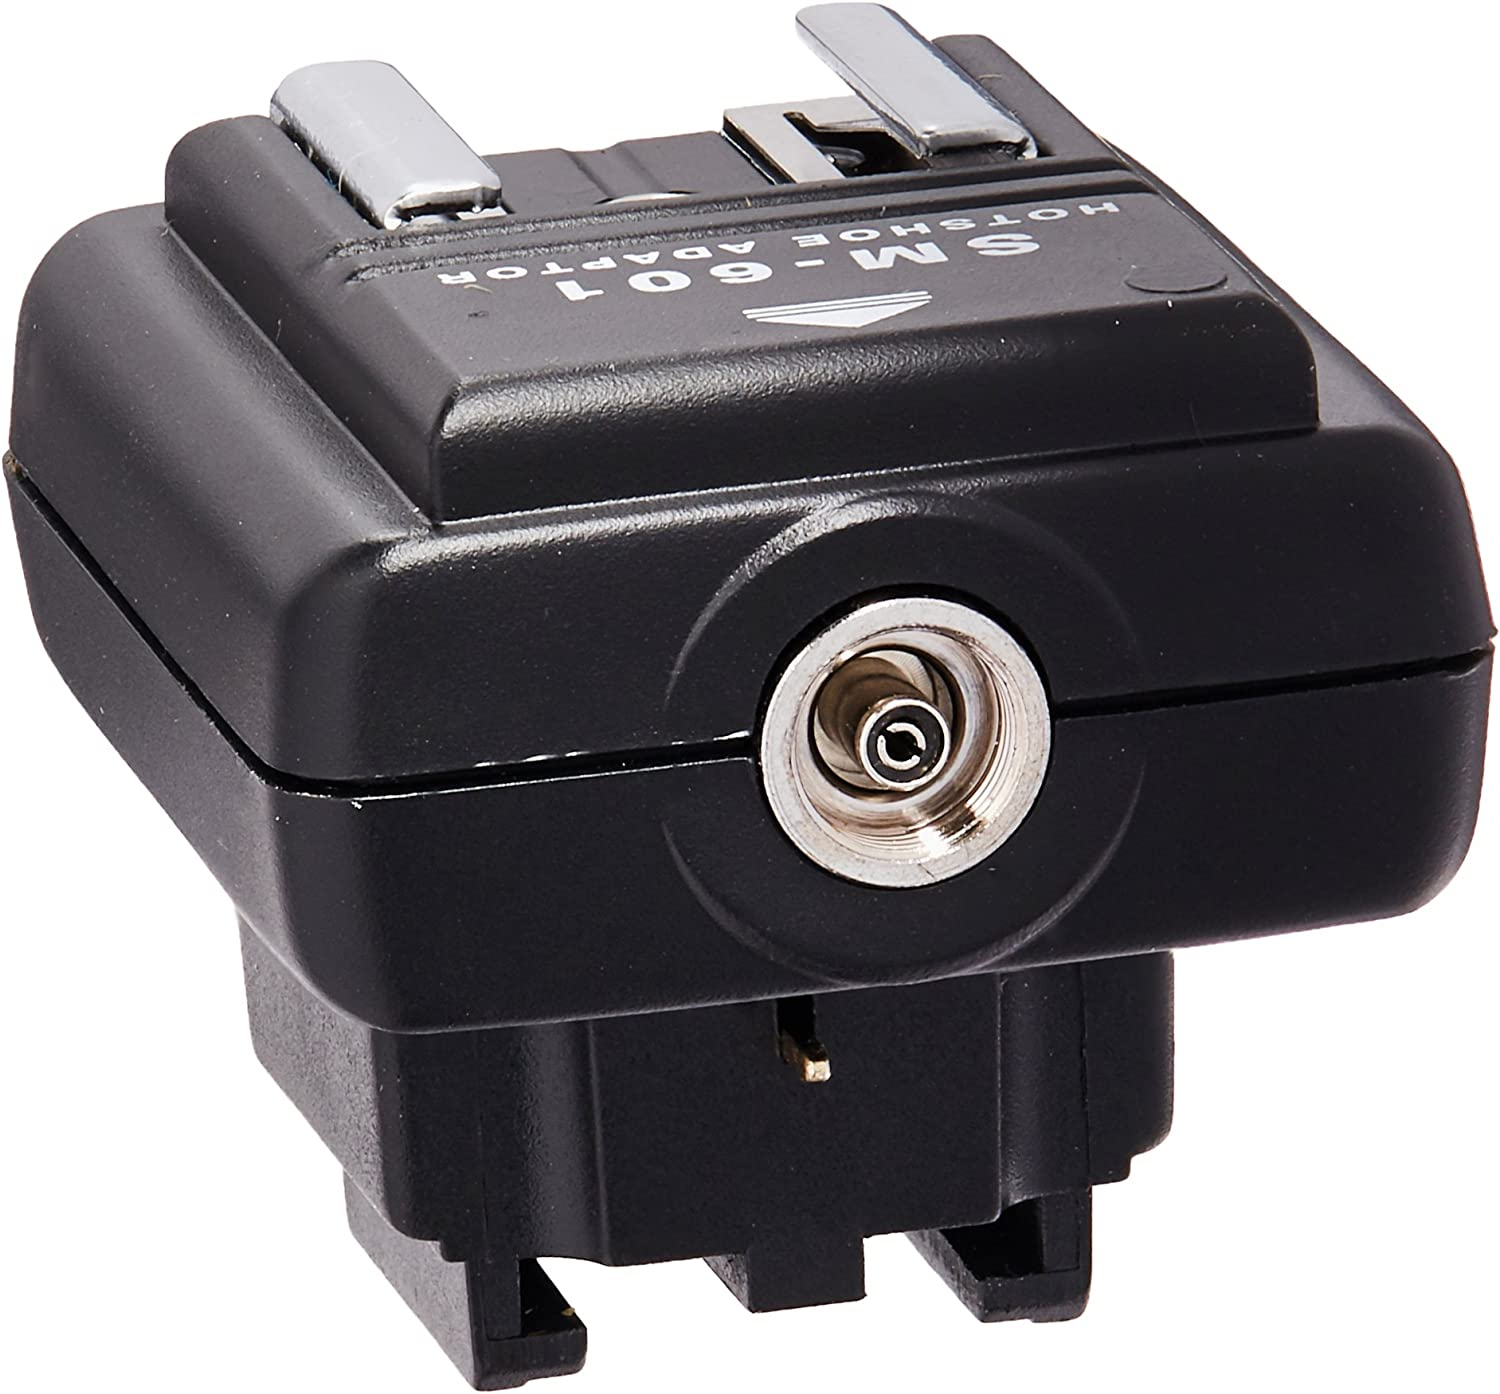 A450 Maxxum DSLRs that use standard hot shoe flash for Sony A100 ...